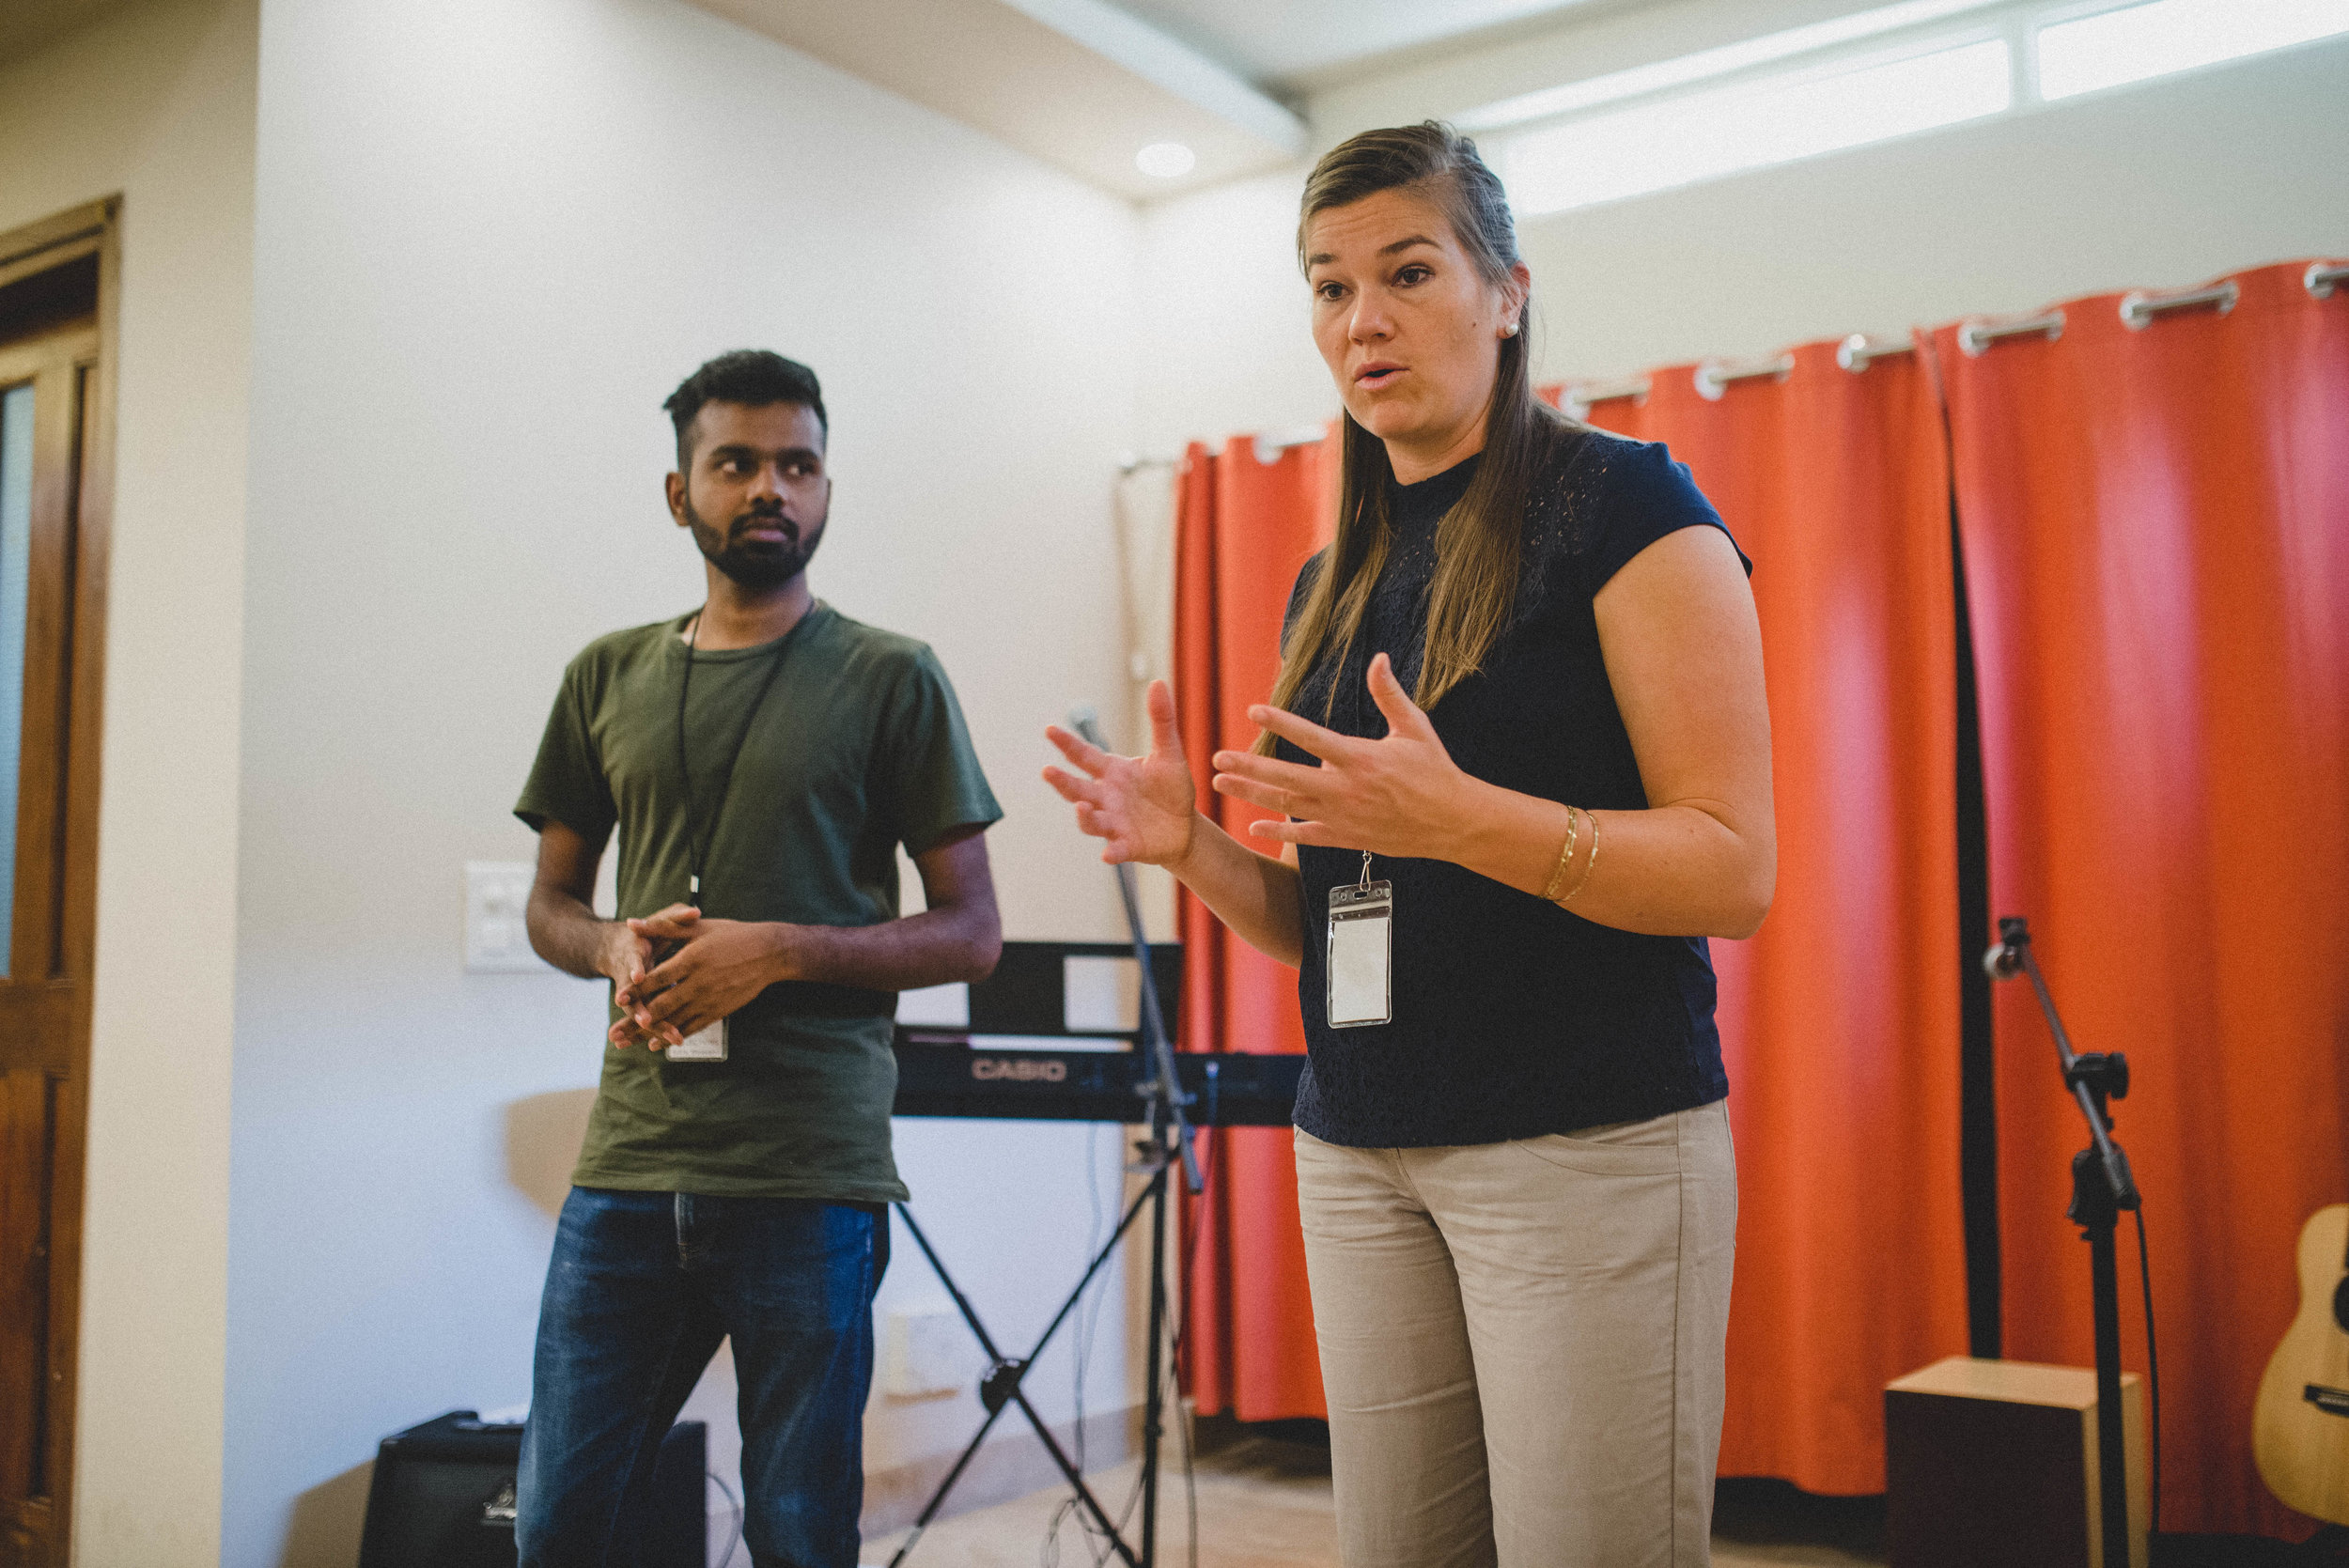 Rebekah Davis taught on the book of Genesis and Manohar Paul translated. Participants were challenged to recognize God's intention for humanity and how he wants us to live in the world.